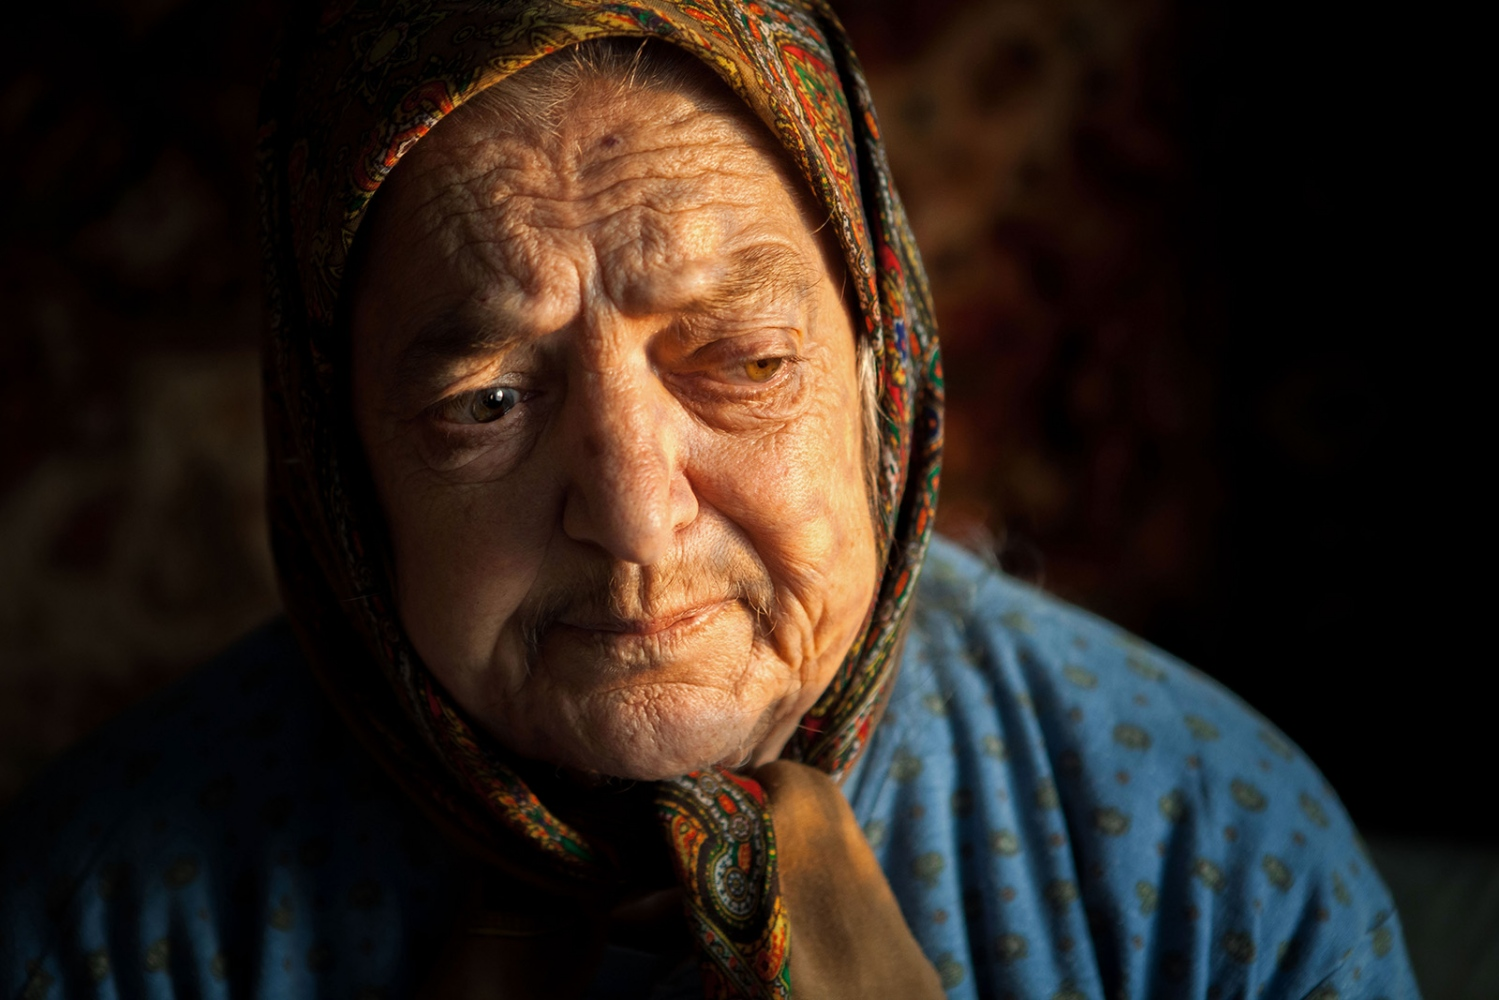 "Pasha, an elderly woman living in rural Moldova, in the village of Vadeni, sits in the warm evening sunlight, as we talk about her life in the single, small room she inhabits everyday. Pasha can no longer walk due to extreme leg pain and was confined to her one room in the small separate house she and her sister, Ana, share. She is frequently moved to tears as we discuss her exile to Kazahkstan, ""[The night we were deported] …they took us to the police station in Floresti (a nearby town to Vadeni, Pasha's home village, in the Northern region of Moldova). From there, they put us in a cattle car on a train. There was nothing inside. No toilet, no food, nothing, and thus we travelled for 2 months … some people died [during the journey], inside the train cars."" – Pasha Graur Across the former Soviet Union, millions of people were forcibly deported over the course of decades to the Eastern Soviet States of Kazakhstan and Siberia. This event is one of the longest and deadliest government campaigns in history. In Moldova, hundreds of thousands of people were deported, from 1939 to the early 1950's. The wave of deportations targeted intellectuals, large landowners, dissidents and, at times, regular people who had done nothing to promote attack. Those who were deported had their land and homes taken from them and redistributed to the Soviet state and were deemed ""Enemies of the People"" and were systematically shamed and silenced over the course of decades. Only recently has Moldova been willing to listen to the stories of deportees and try to understand the dark history of their country."